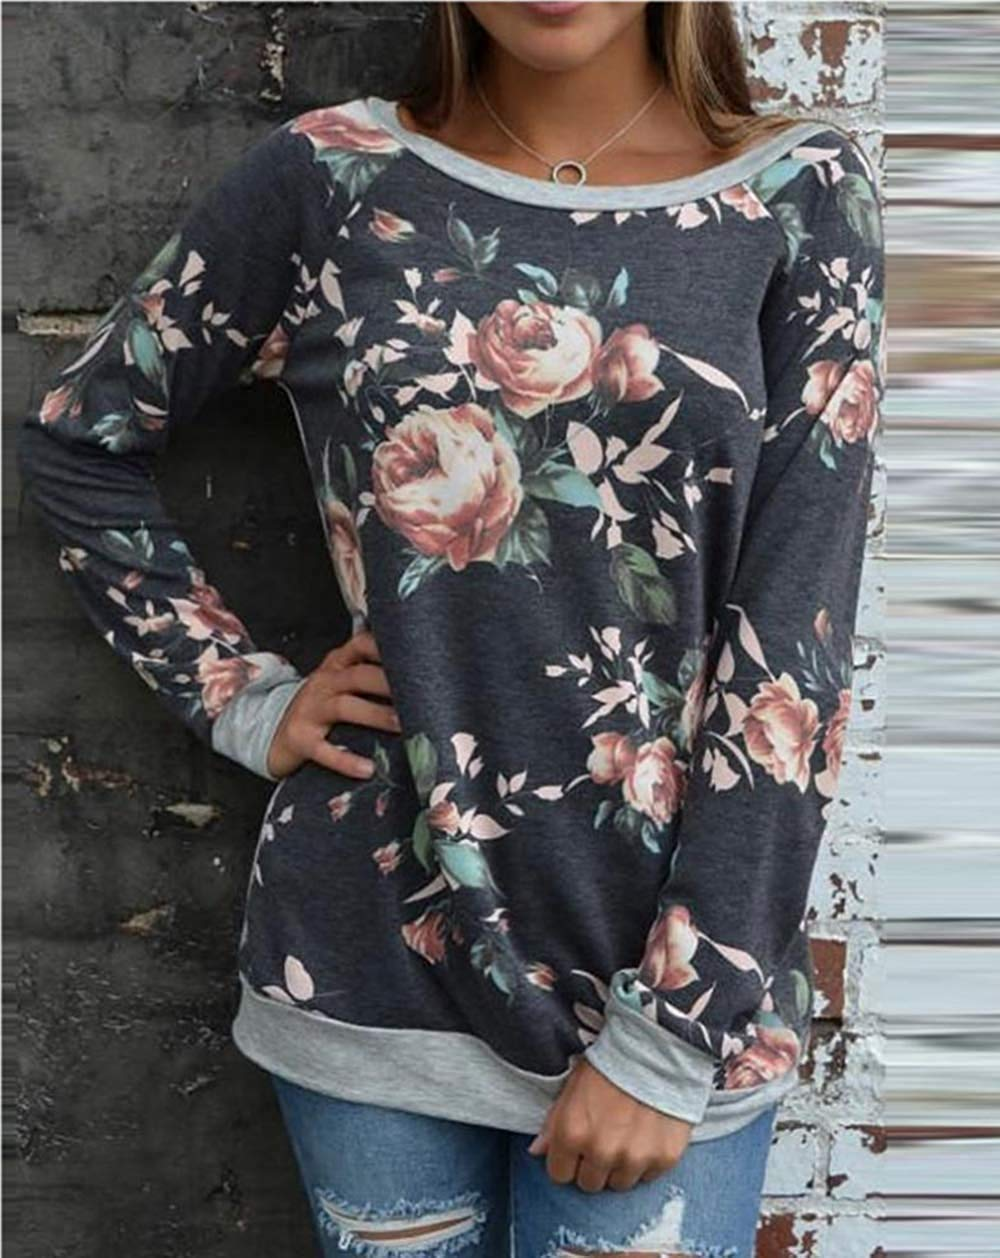 e834ed9c5 Get Quotations · Womens Casual Floral Patchwork T-Shirt Long Sleeve Tops  Sweatshirt Blouse BCDshop